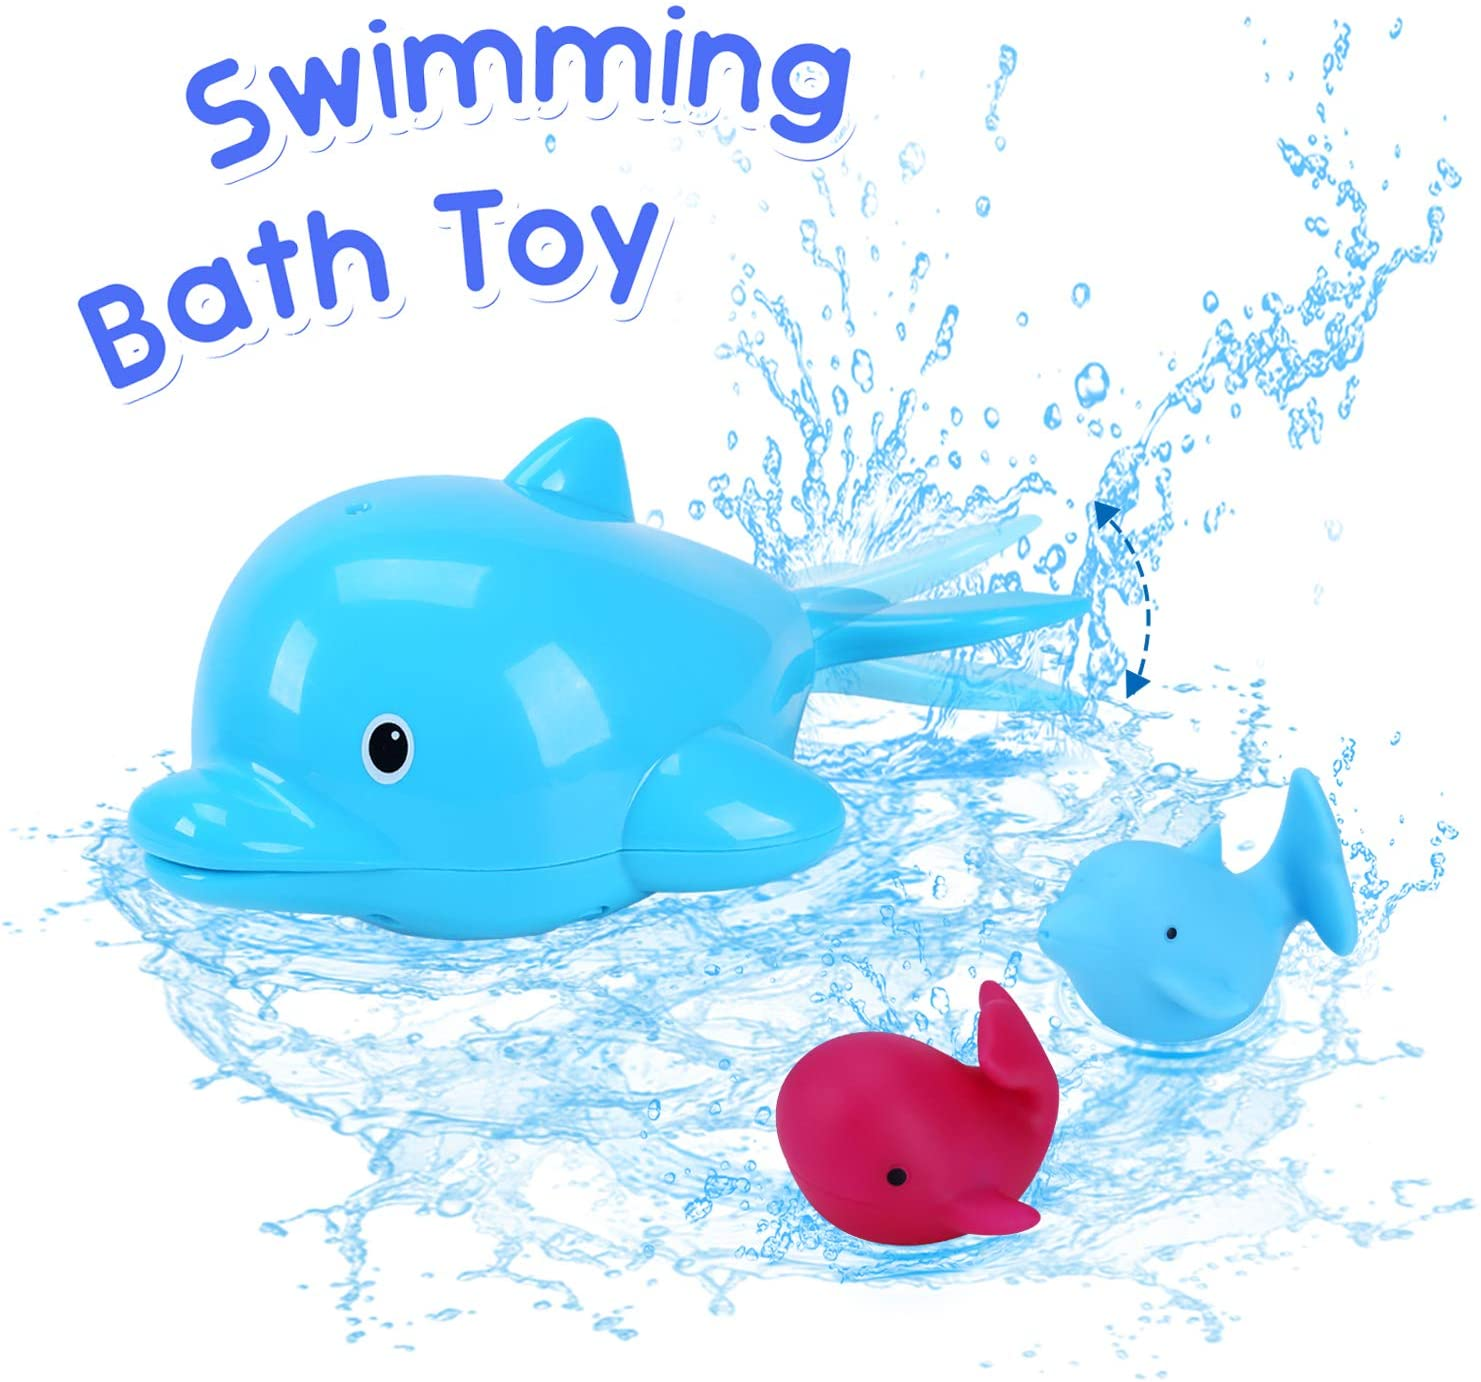 Minnebaby Swimming Bath Toys - Cute Paddling Dolphin, Squirting, Light-Up Toy - Colorful Bathtub and Pool Play Time Floating Accessories for Babies and Toddlers - Safe and Non-Toxic